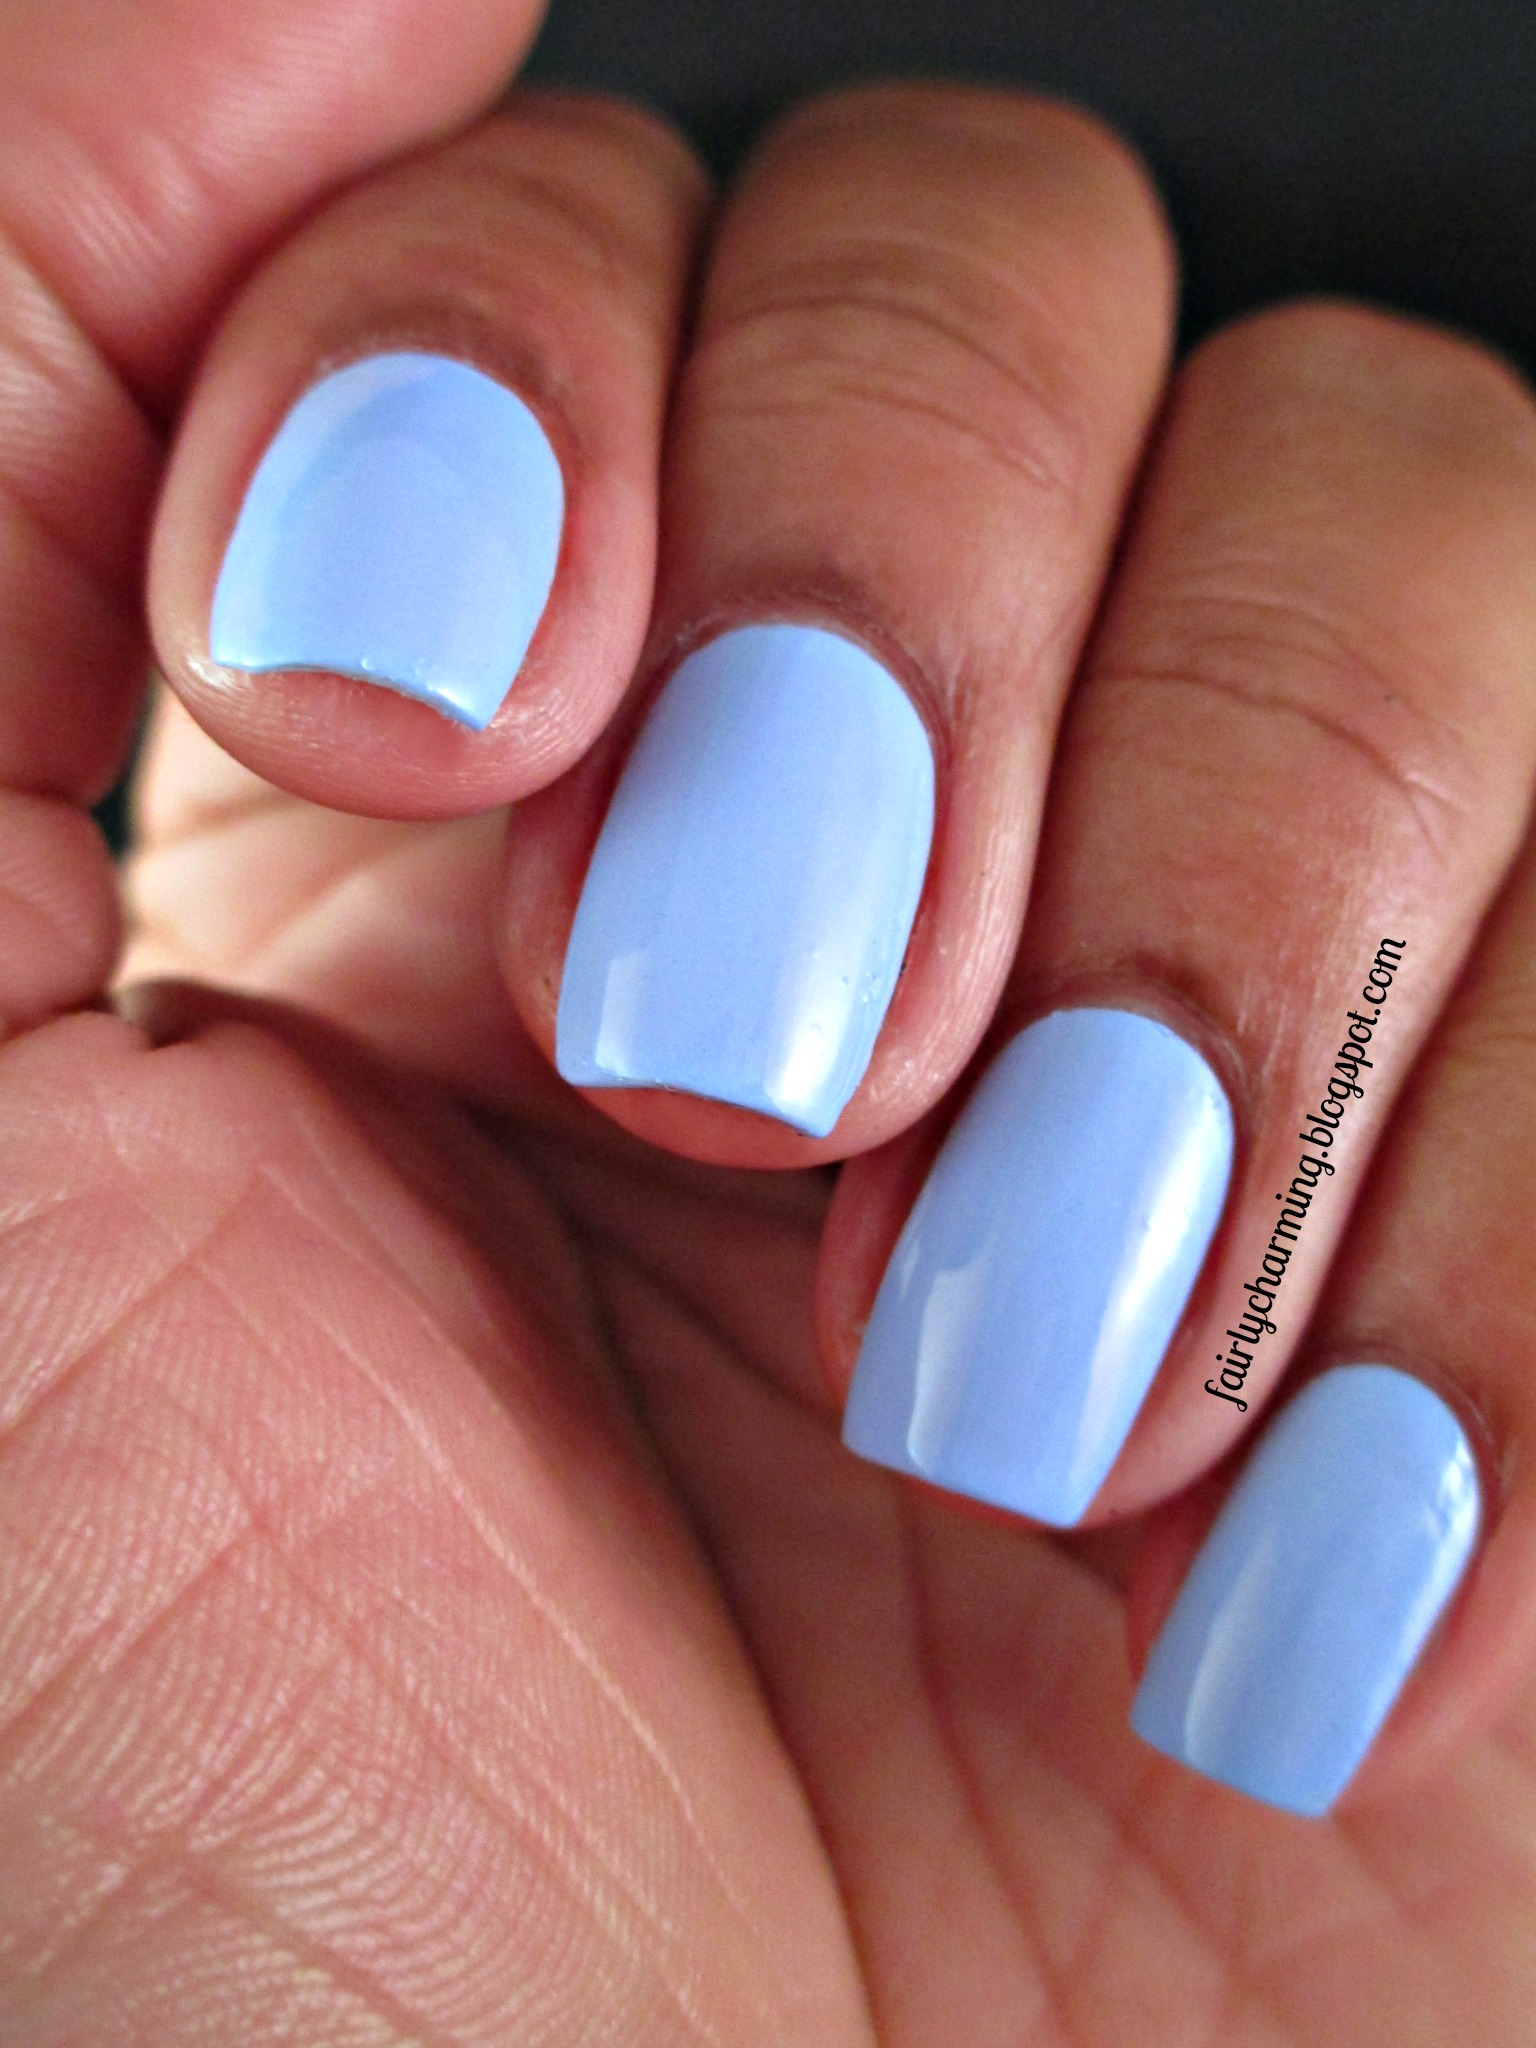 Mediterranean Sky - Faded Sky Blue Creme Nail Polish · Spellbound ...